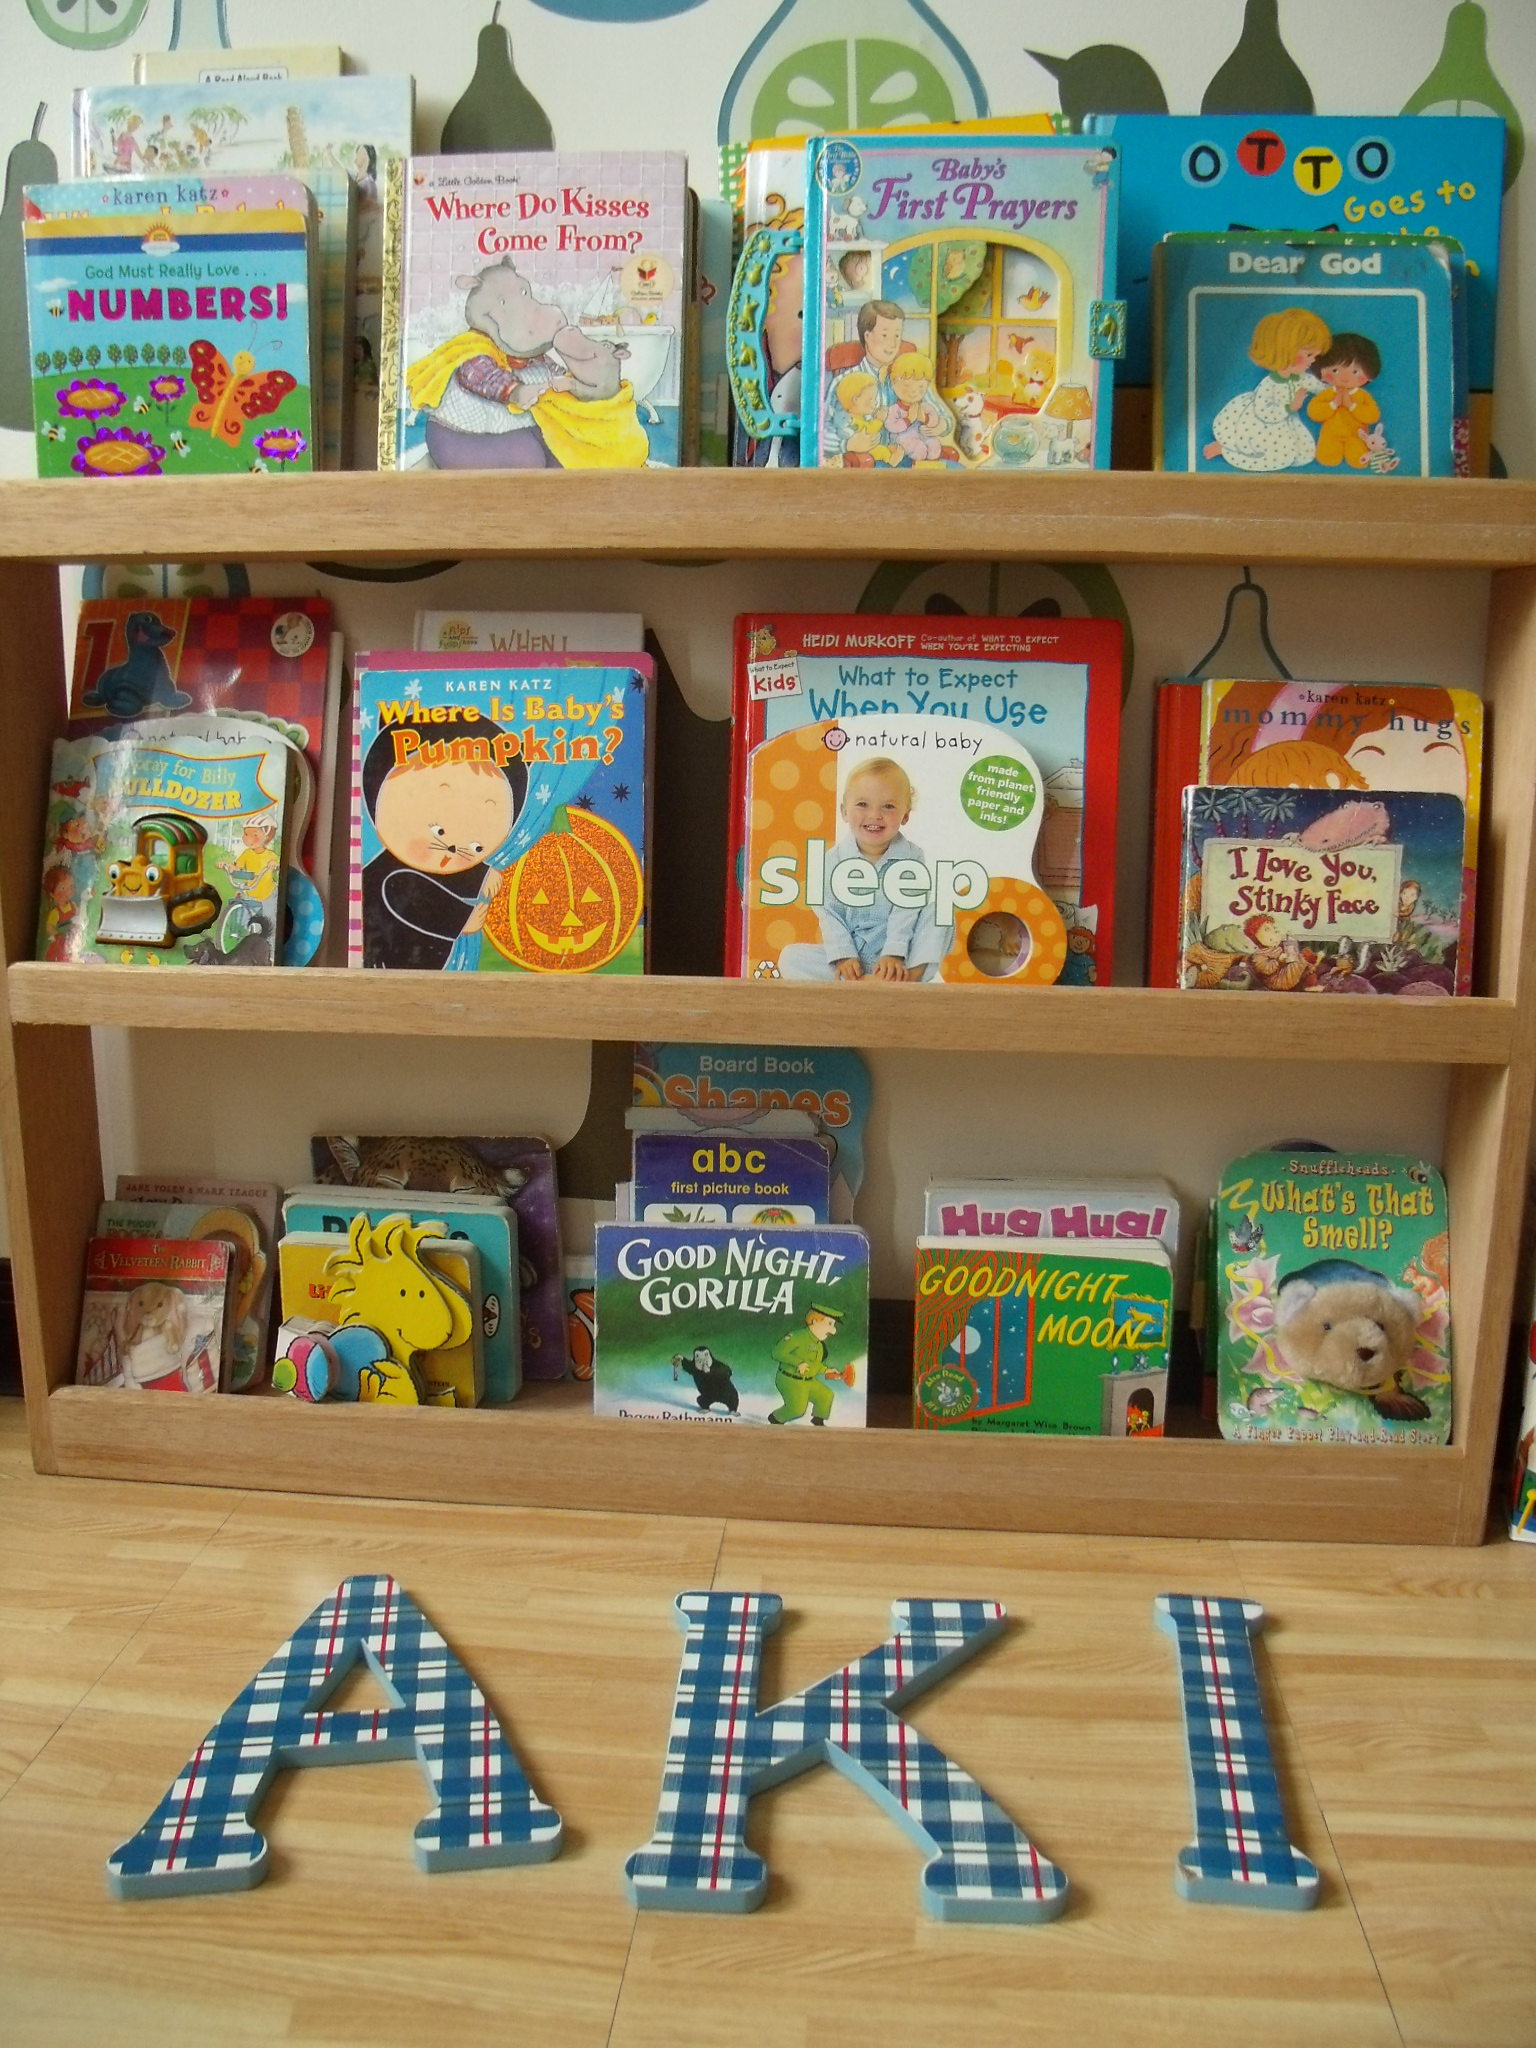 How To Make A Book Holder Out Of Cardboard ~ Diy cardboard bookcase familia kiki